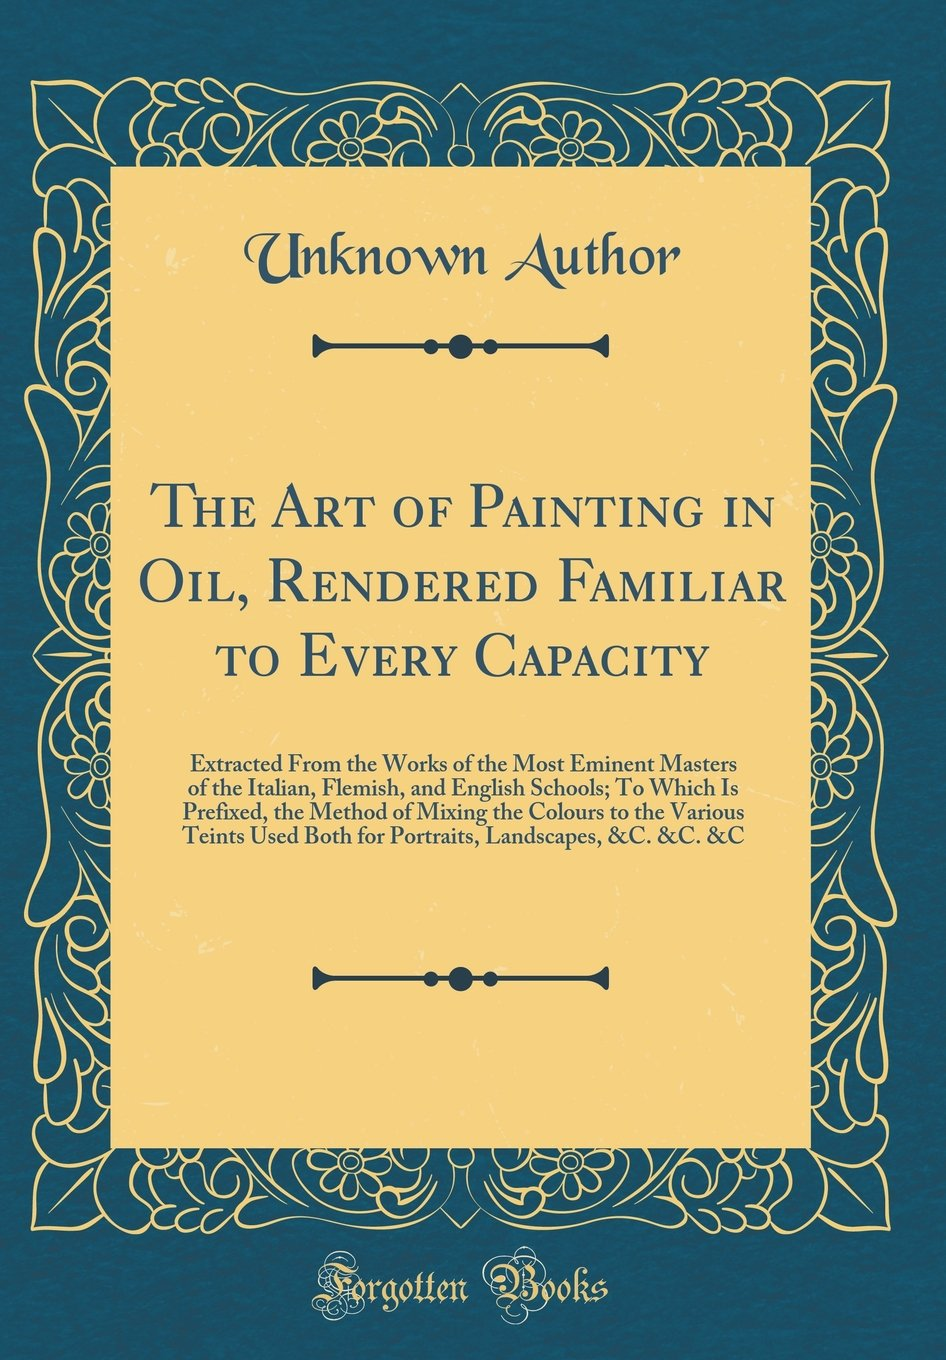 The Art of Painting in Oil, Rendered Familiar to Every Capacity: Extracted From the Works of the Most Eminent Masters of the Italian, Flemish, and ... Colours to the Various Teints Used Both for PDF